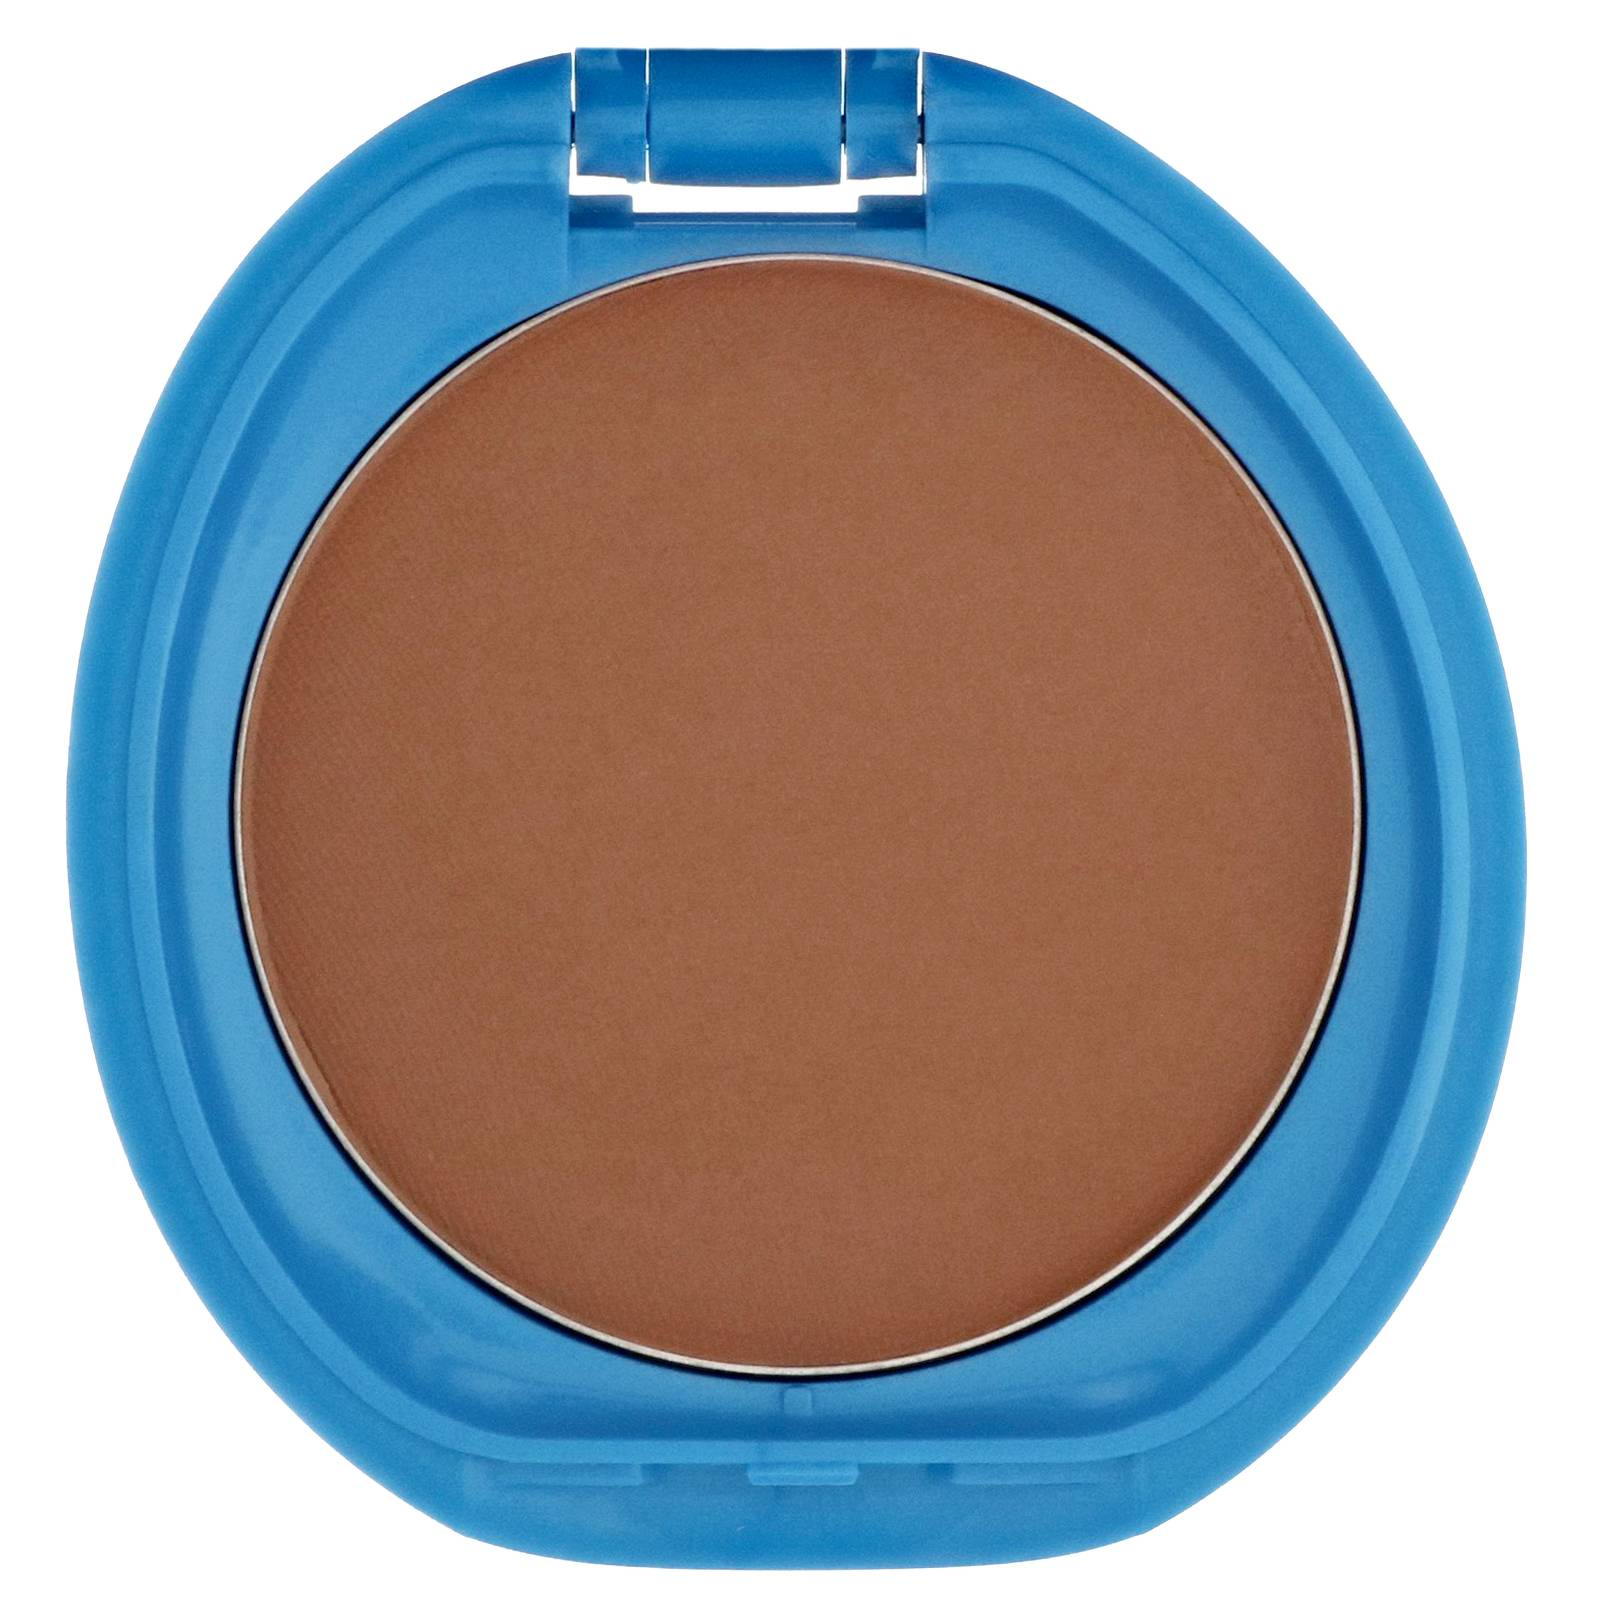 Shiseido Sun Protection Compact Foundation SPF30 SP30 Scuro Beige 12g